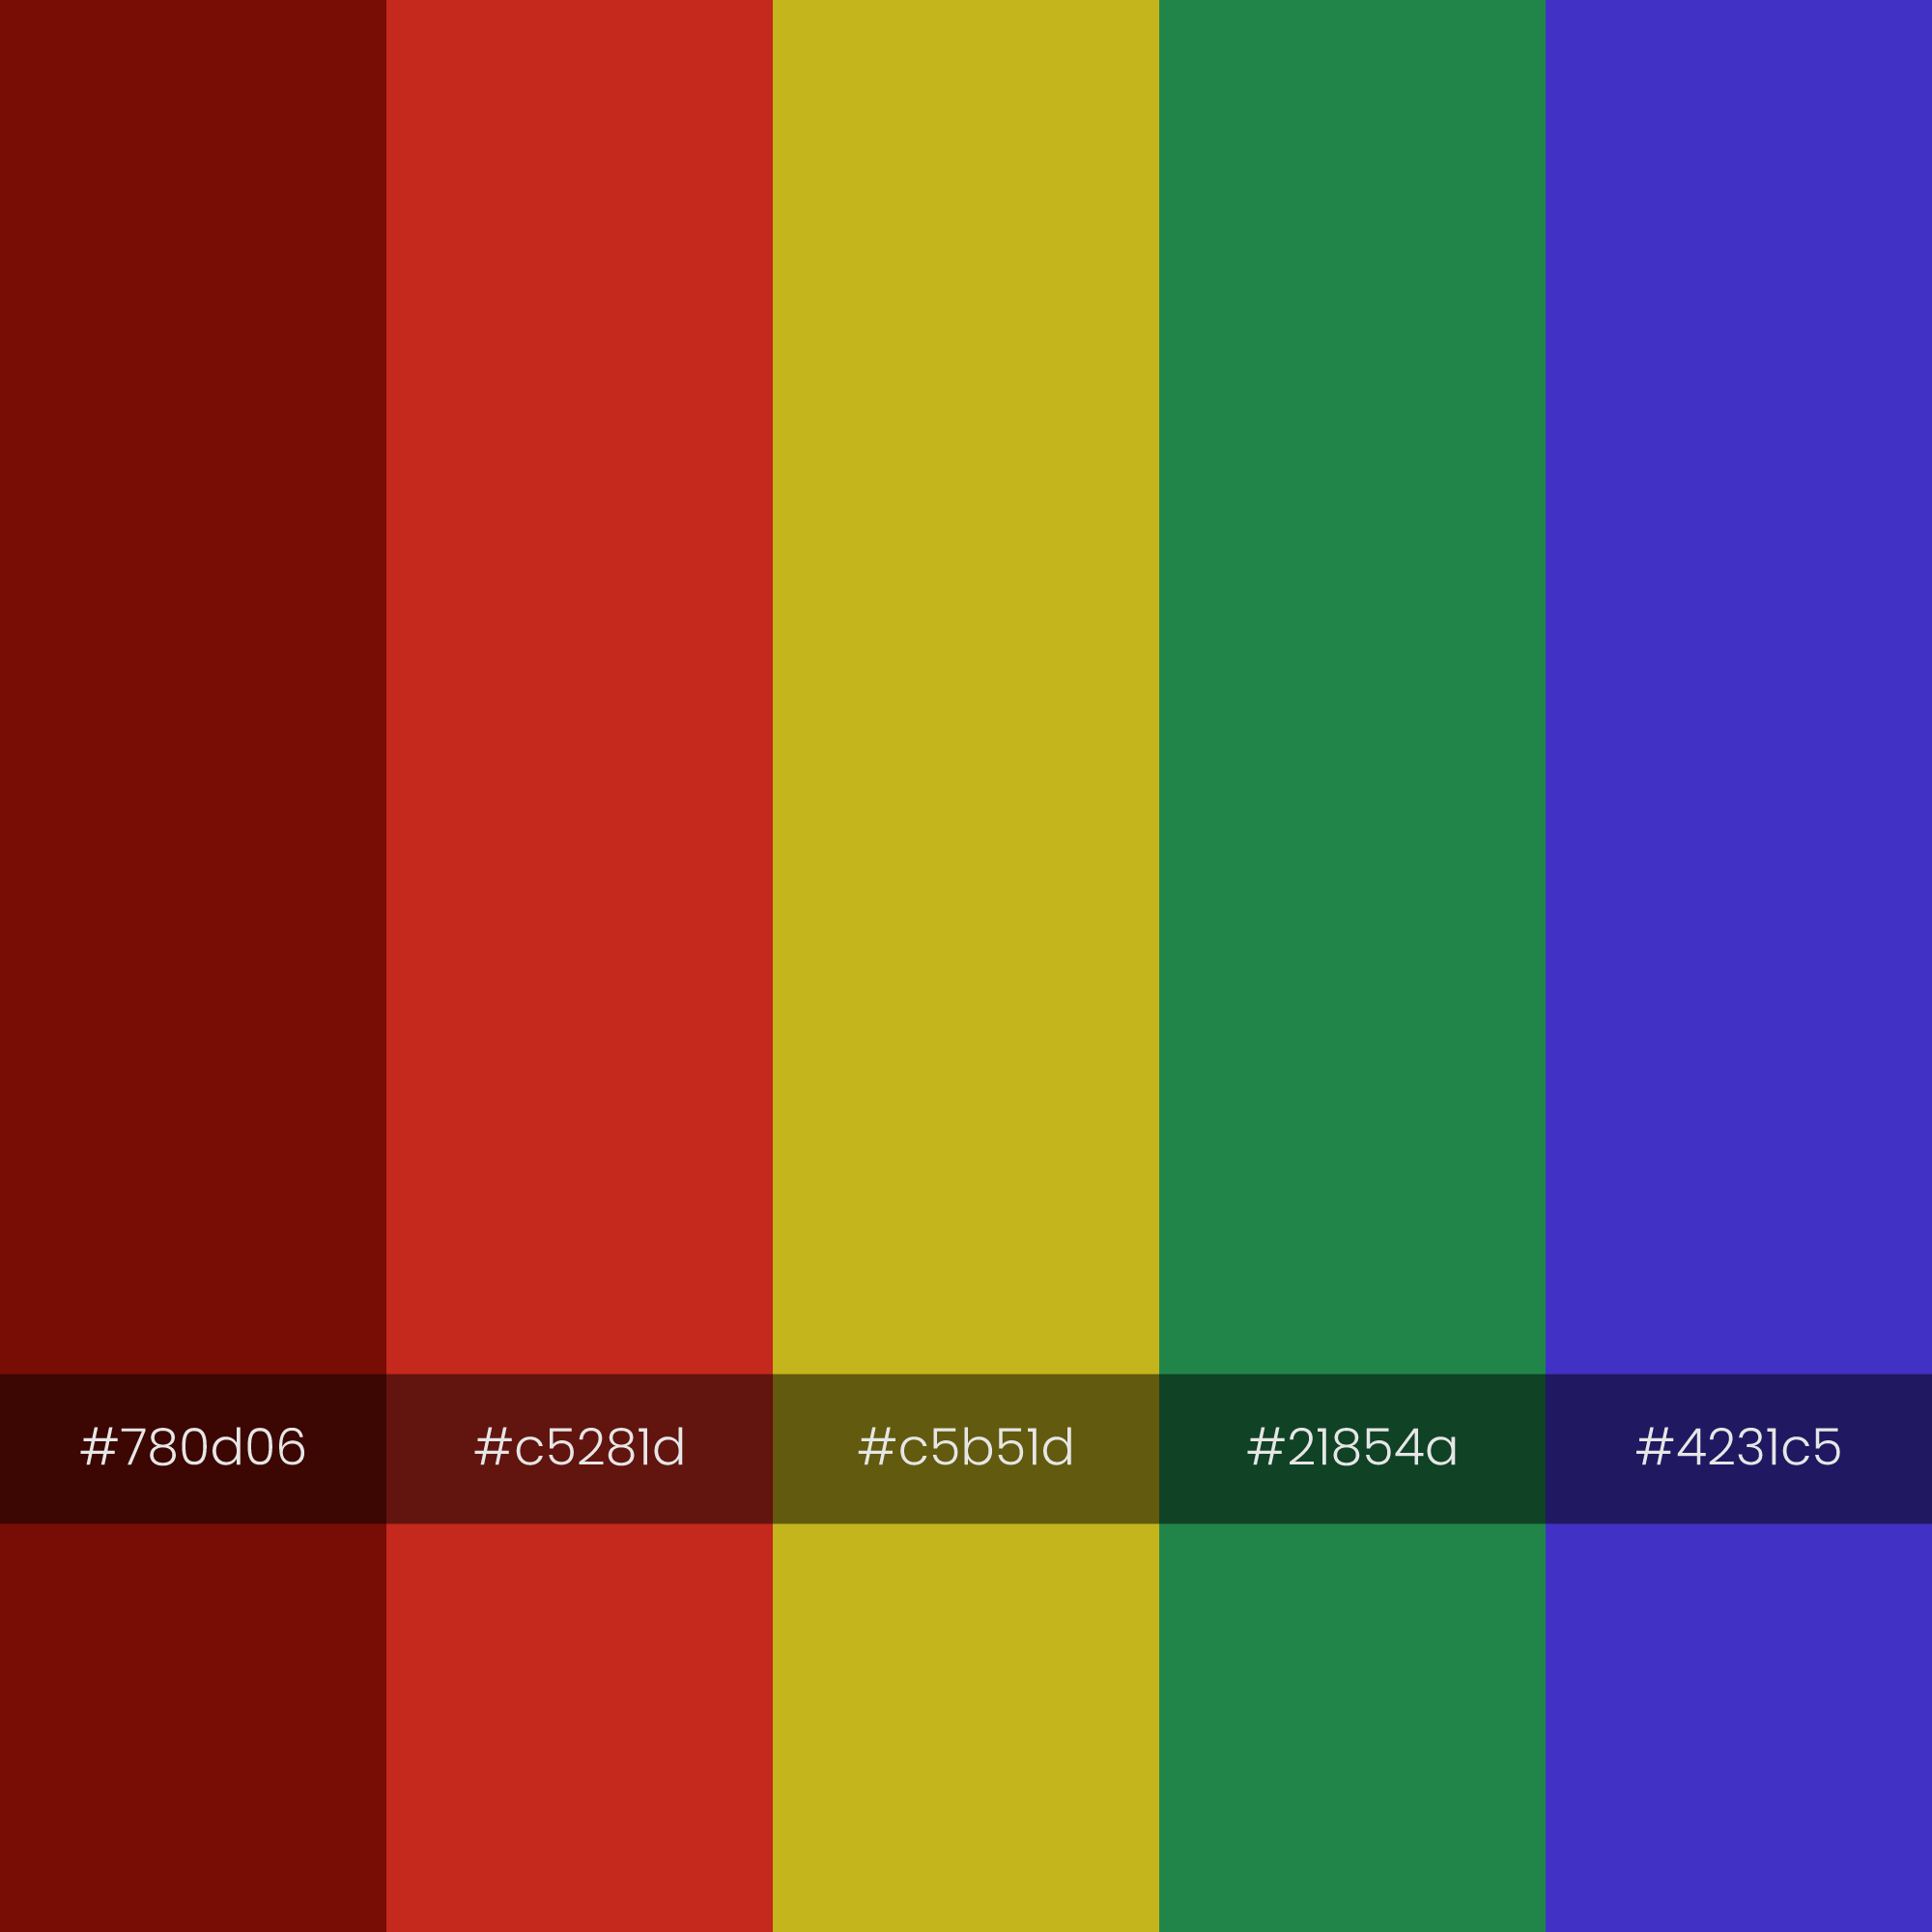 color-palette-date-extended-2000-2000